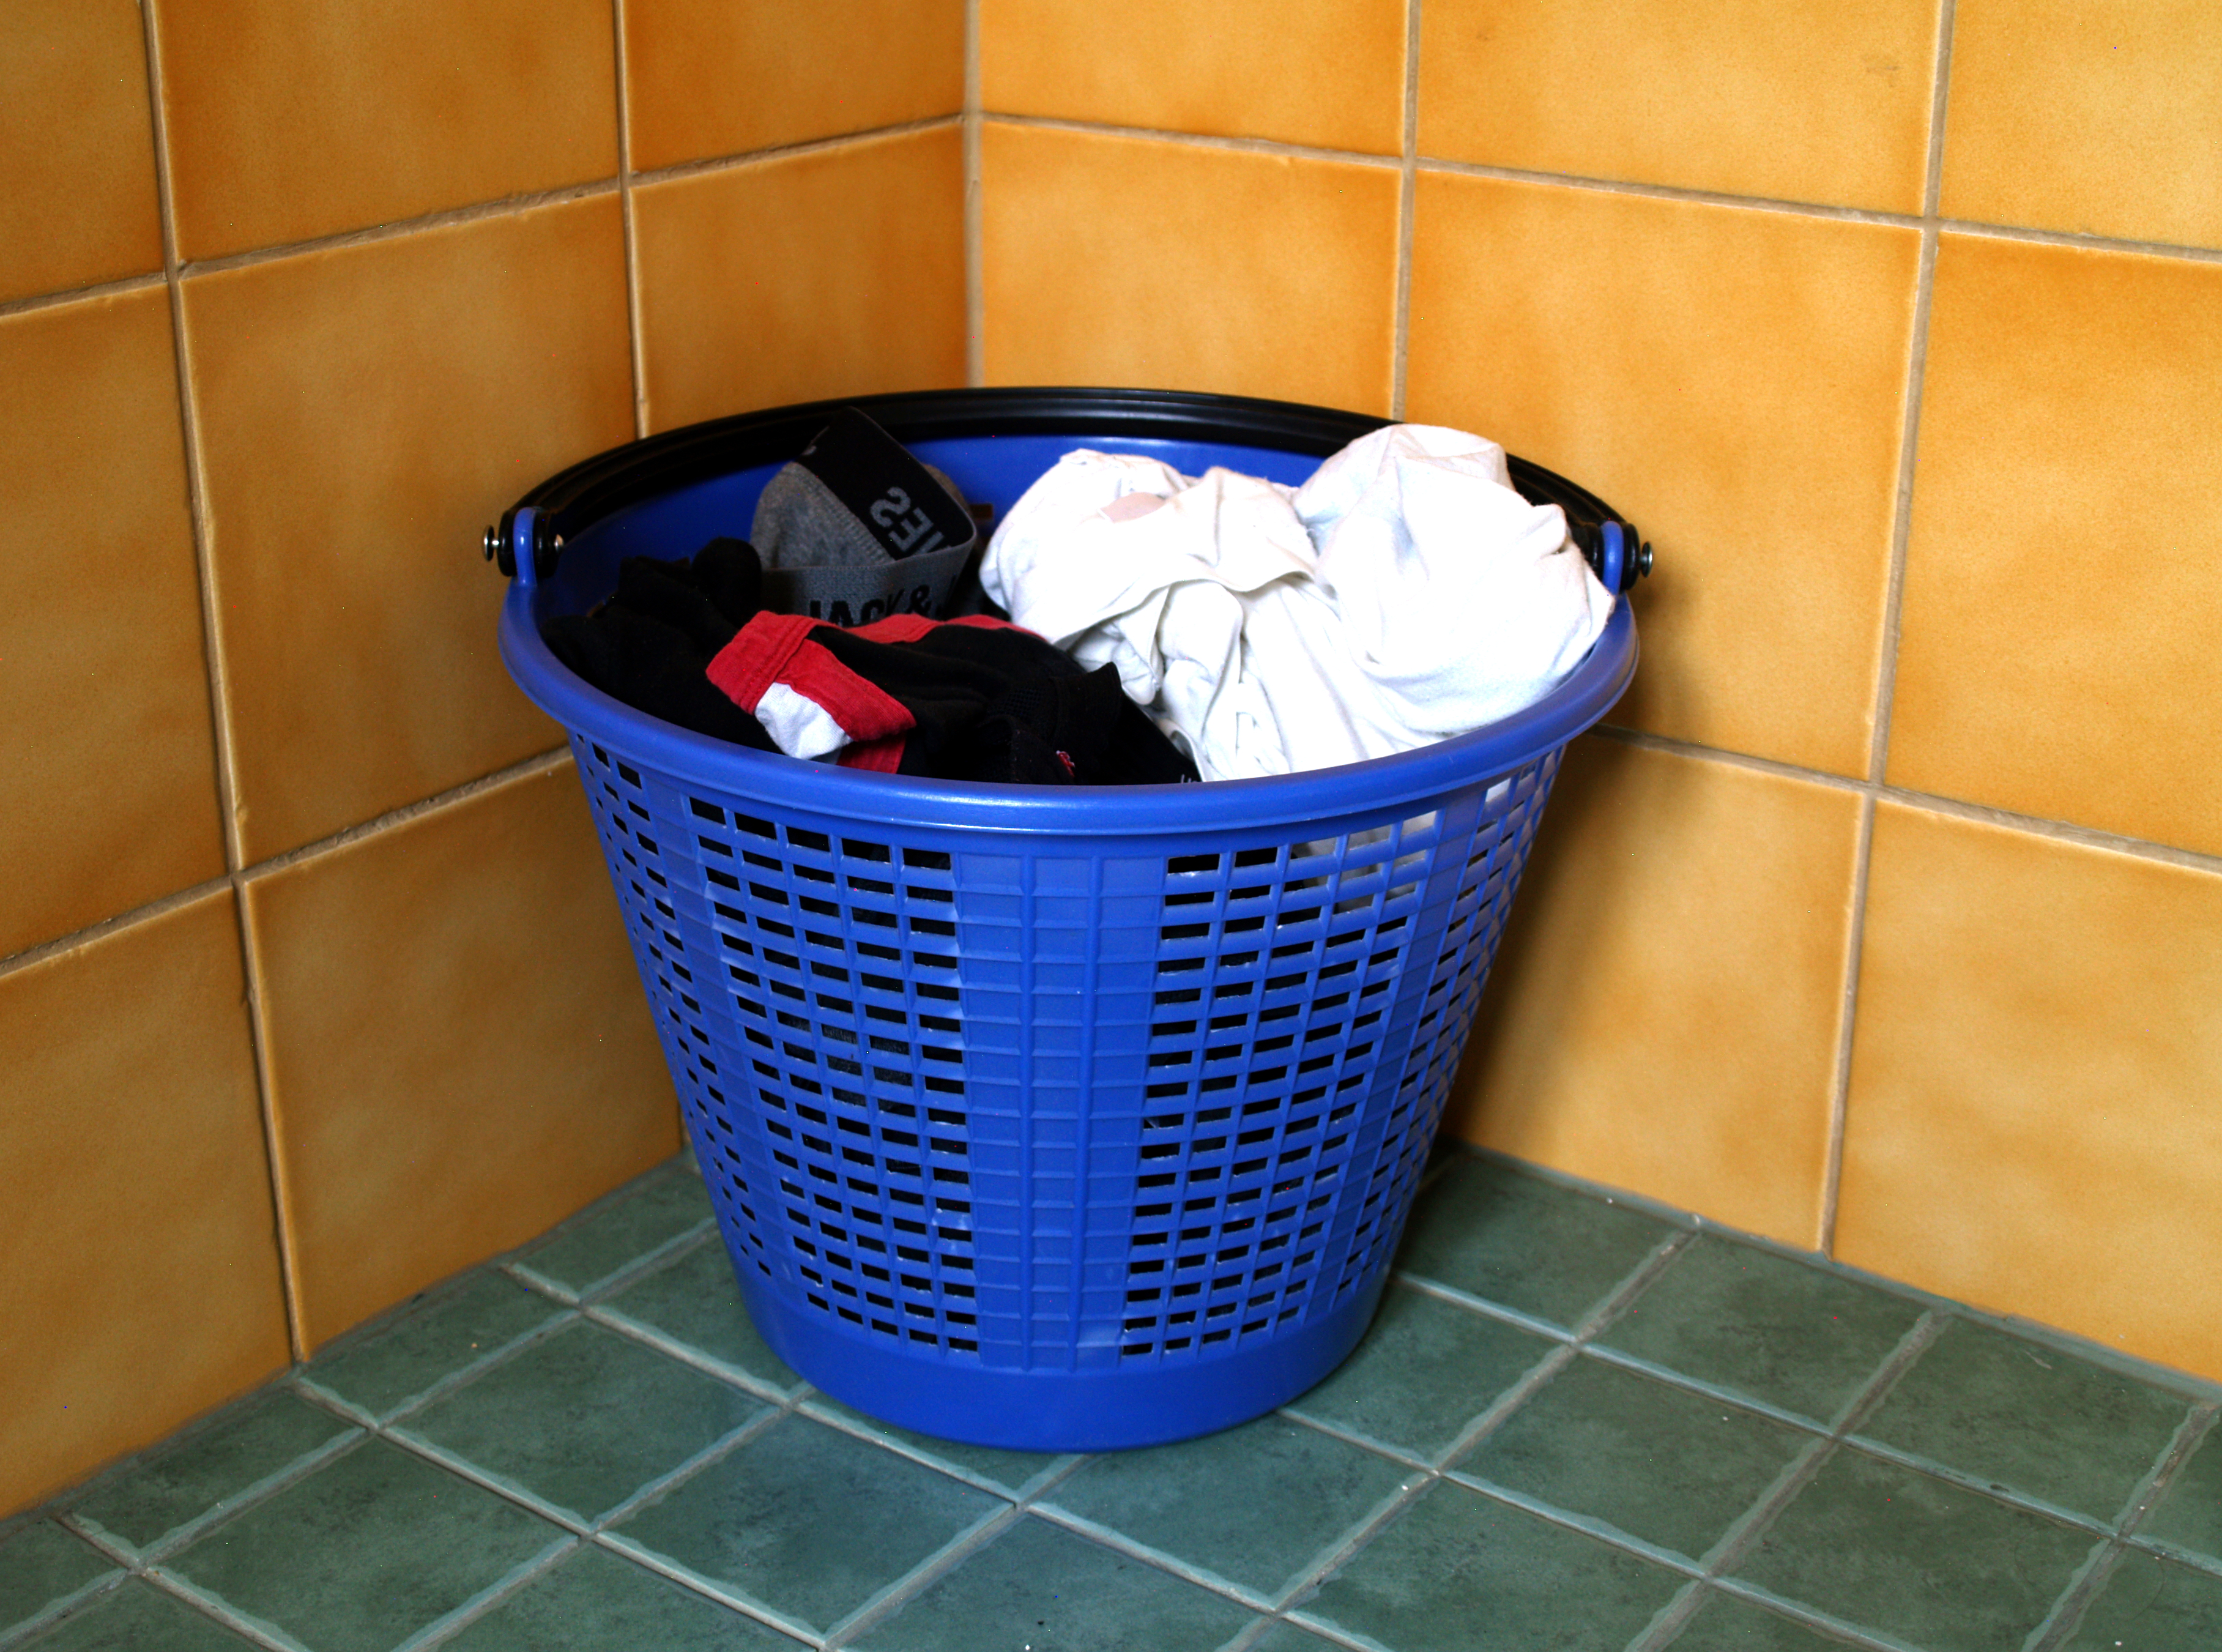 Clothes_in_laundry_basket